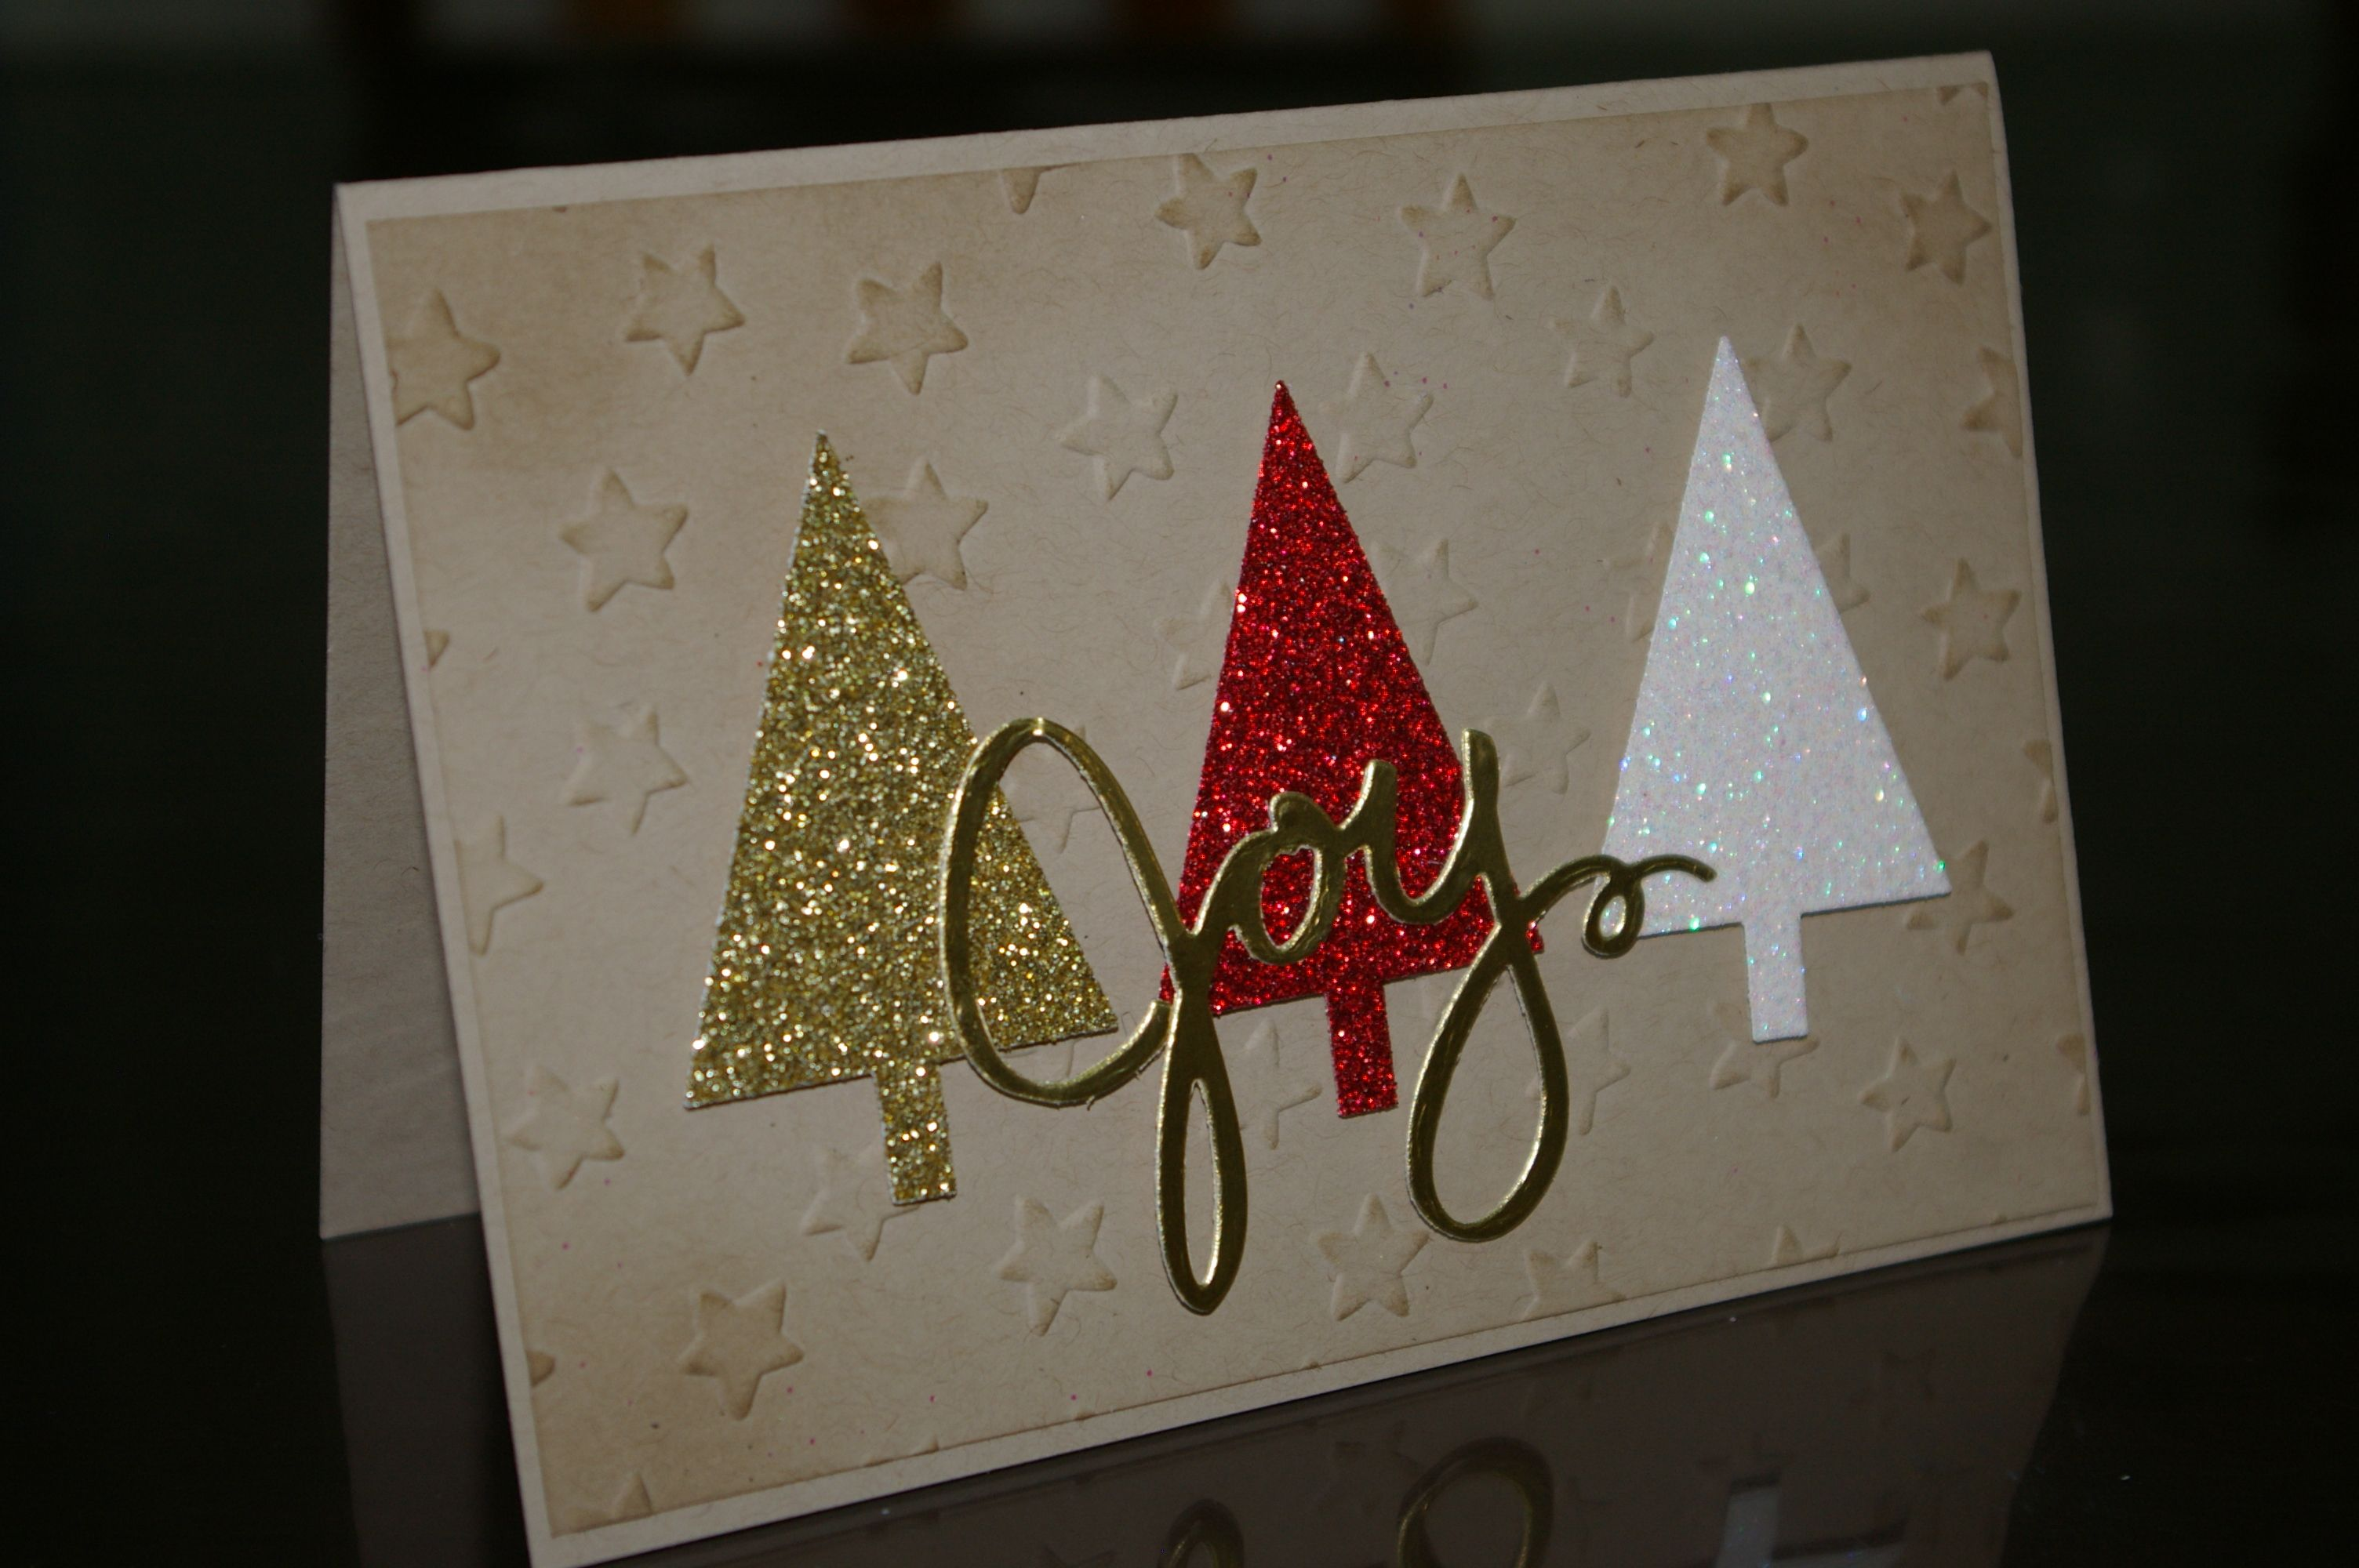 Stampin' Up - Michelle Johnstone - Glimmer paper  Christmas Tree punch & Joy, Lucky Stars embossing folder, Crumb Cake. http://www.stampinup.net/esuite/home/michellejstamping/